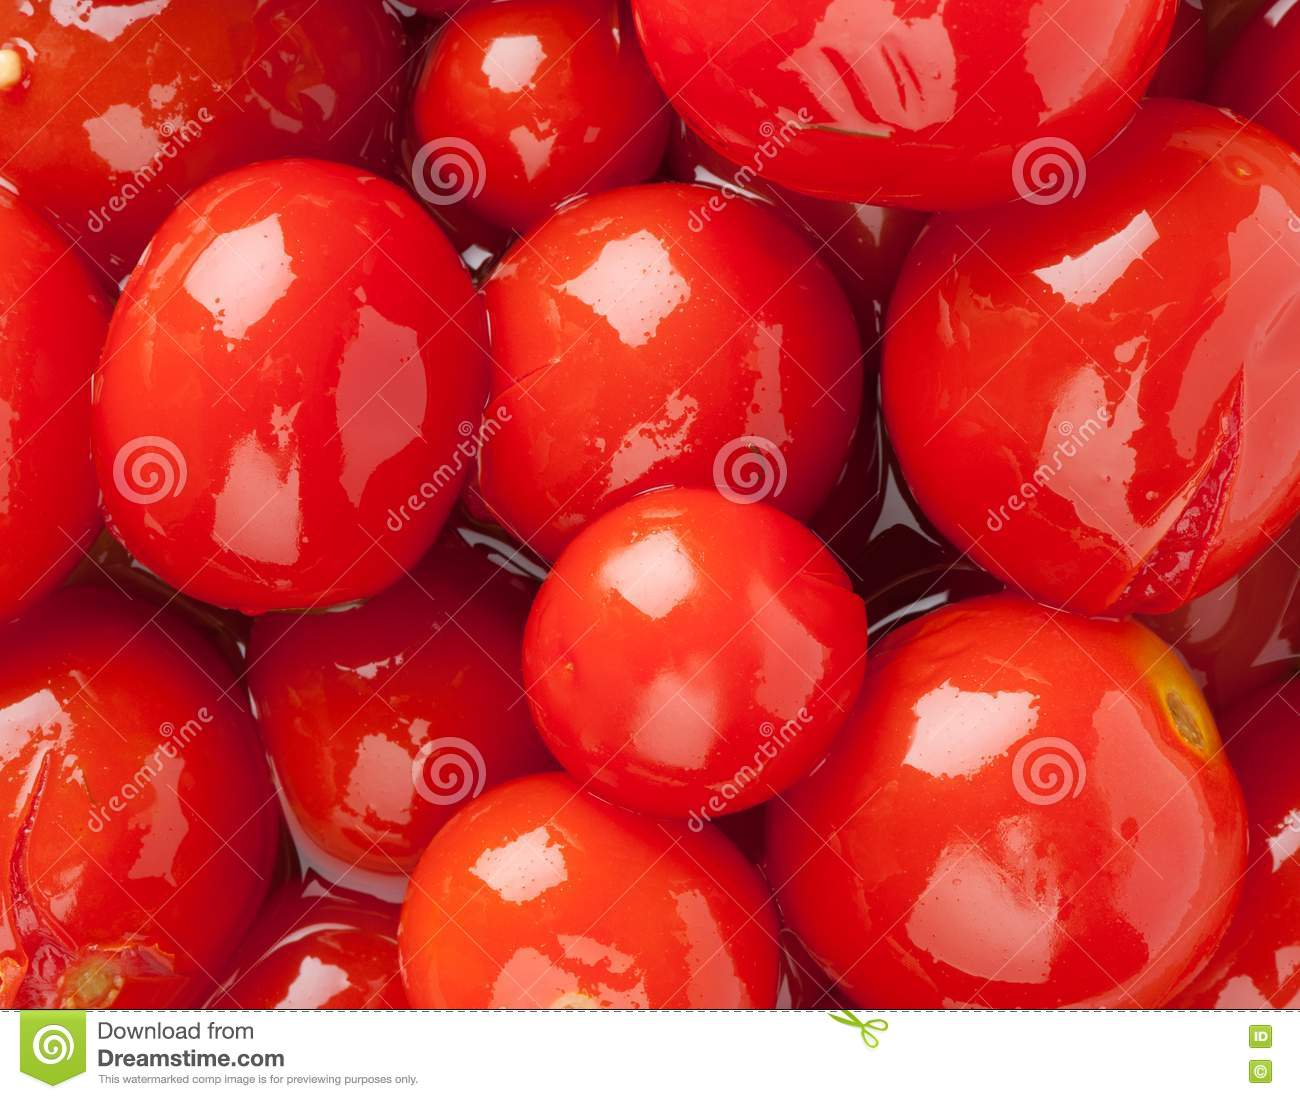 Pickled Red Tomatoes Royalty Free Stock Image - Image: 19703546